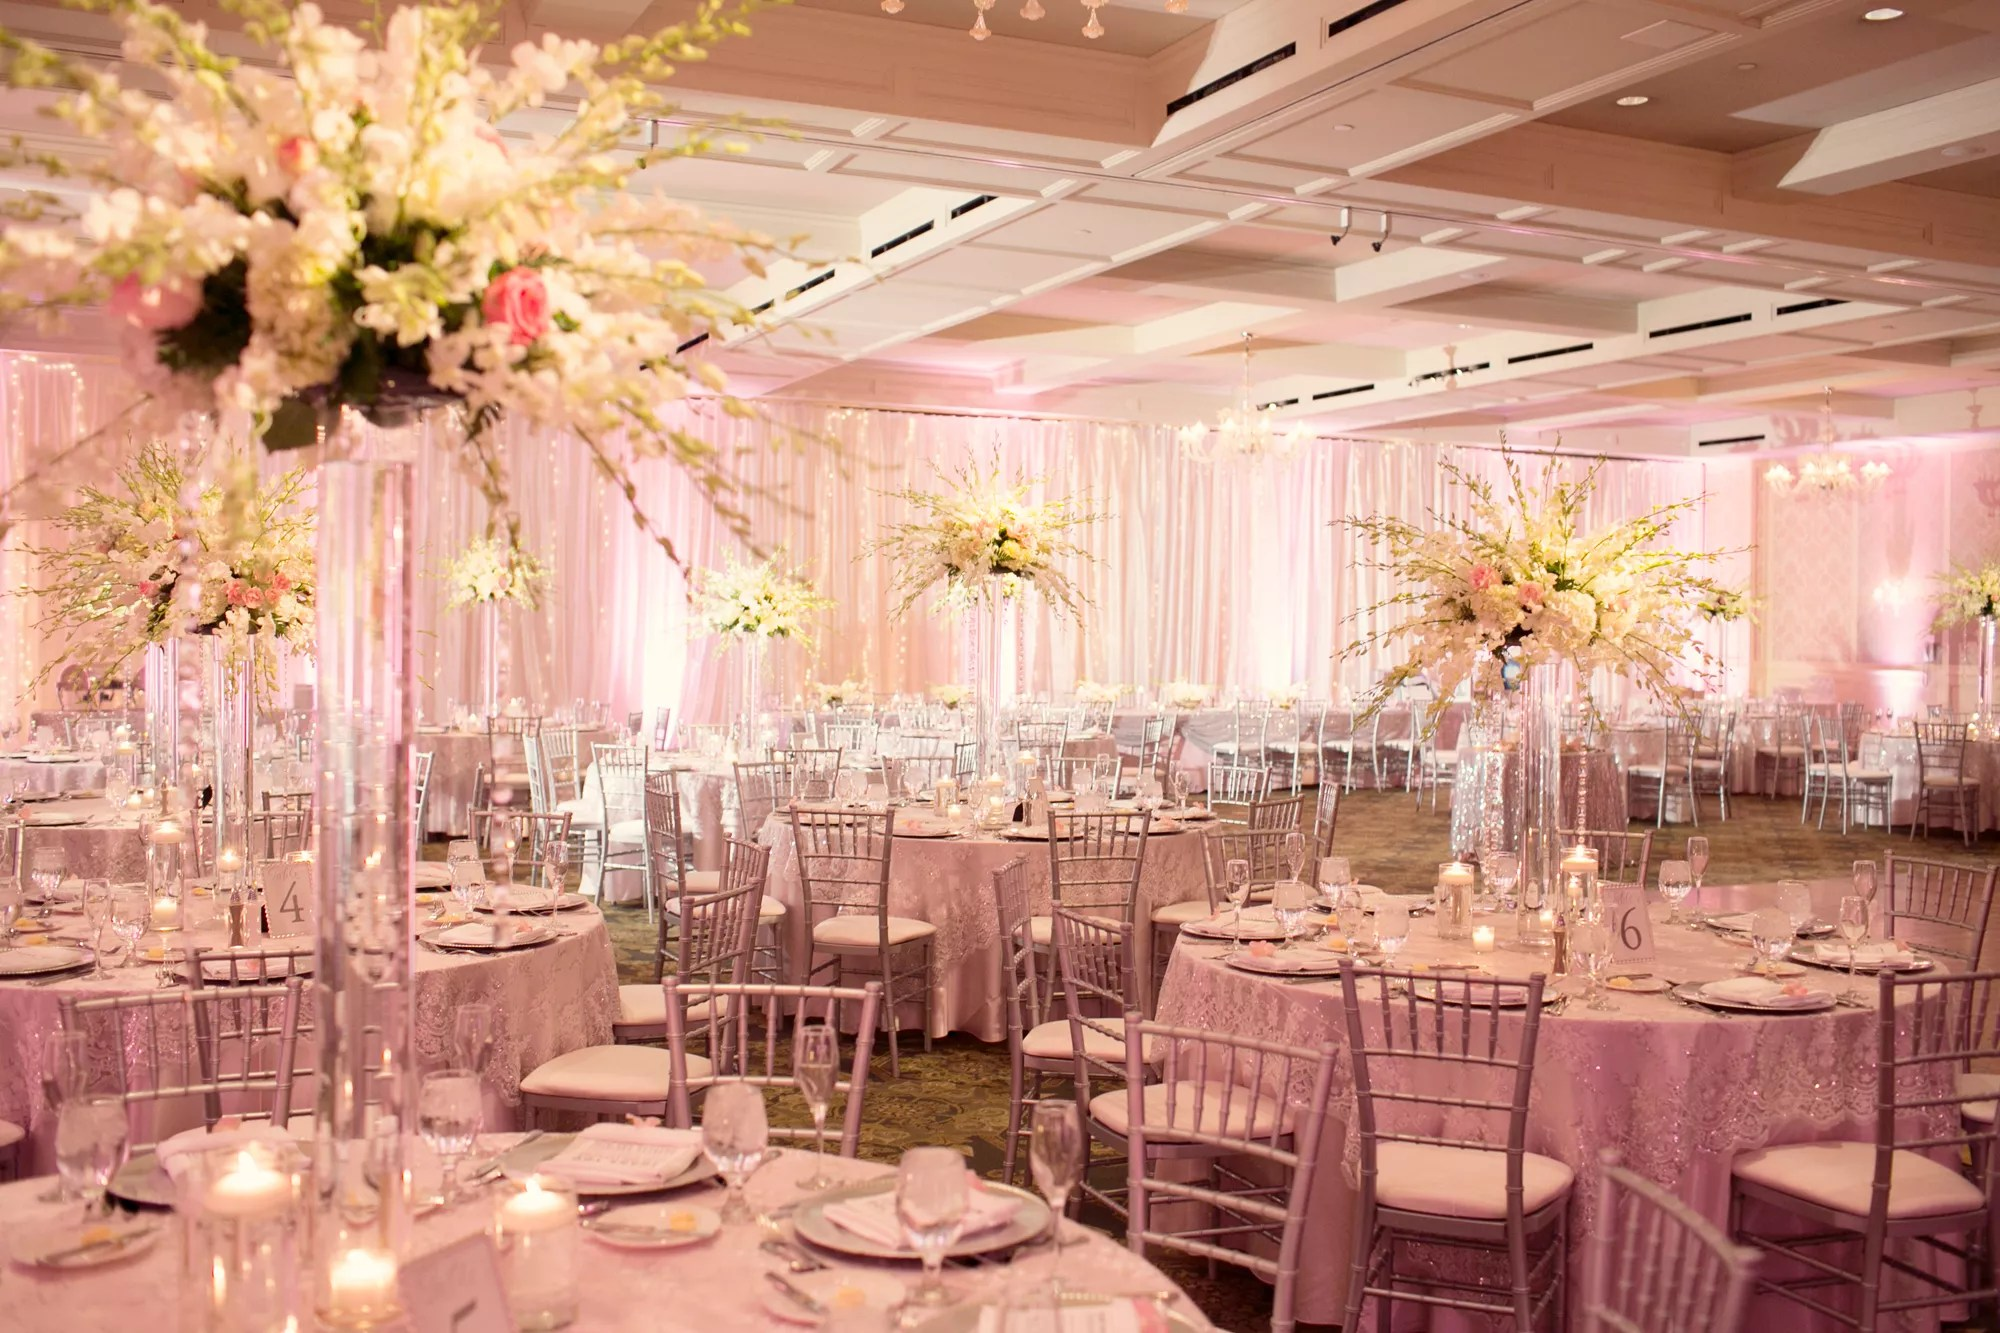 Sparkly Blush Pink Reception Tables and Linens with Tall Ivory Centerpieces